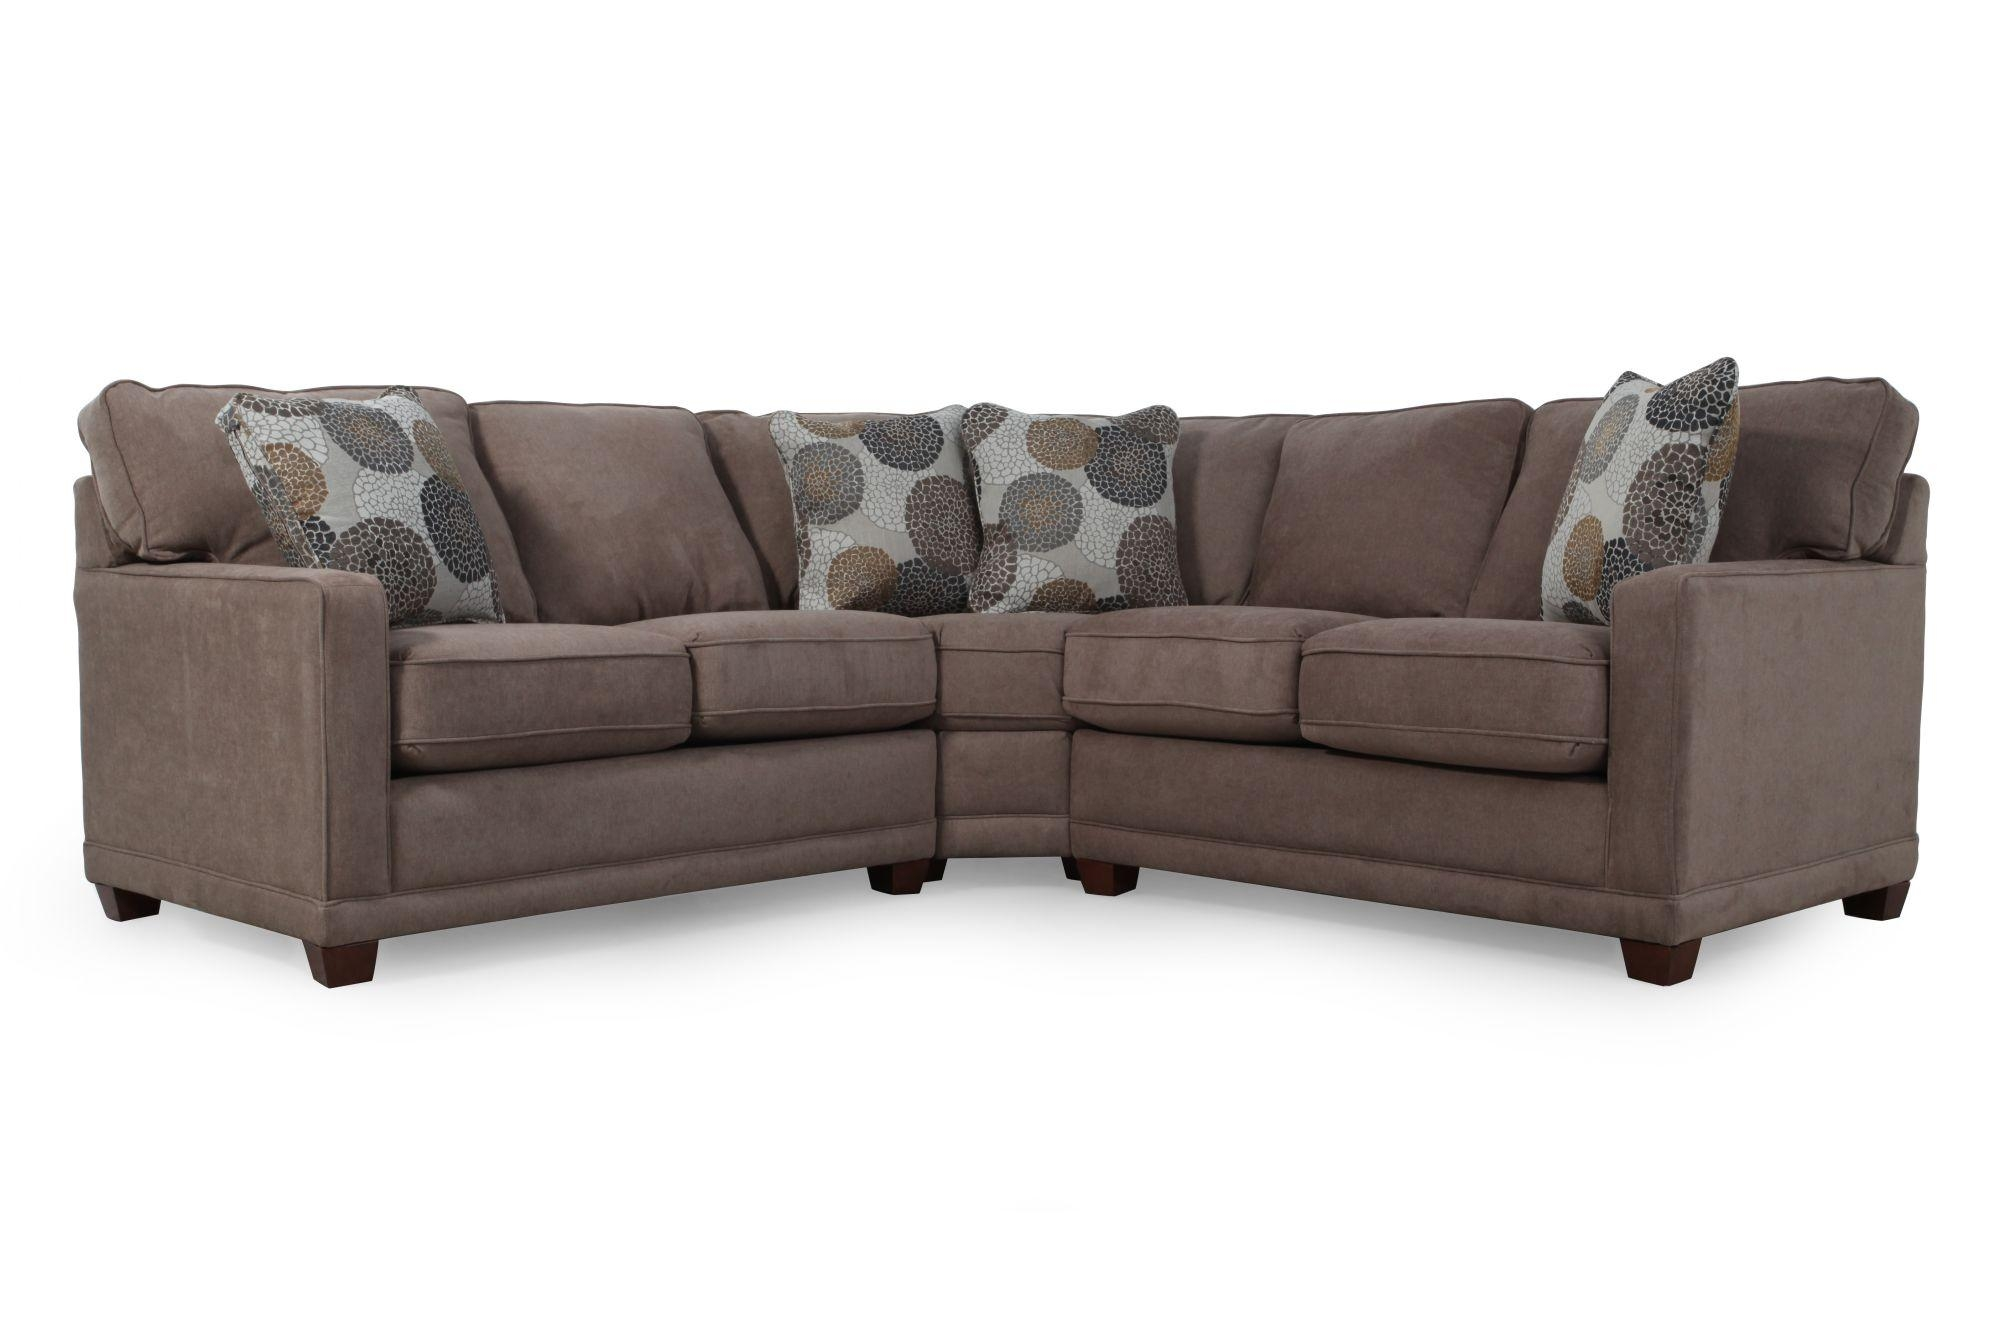 Furniture: Impressive Lazy Boy Sectional For Living Room Furniture With Regard To Lazy Boy Sectional (Image 5 of 20)